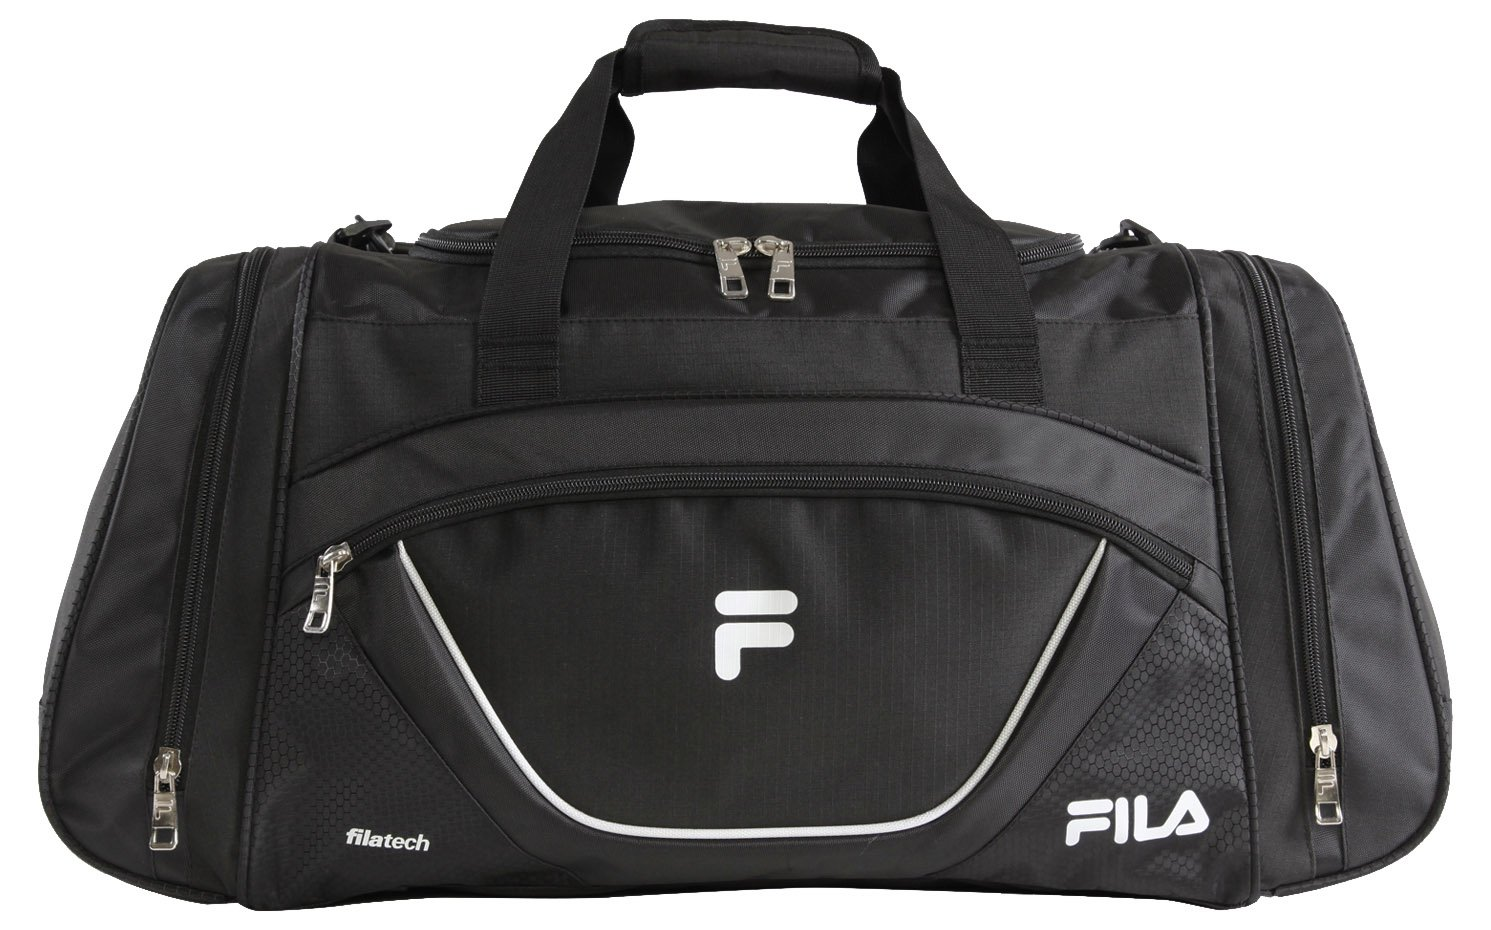 Fila Acer Large Sport Duffel Bag, Black White, One Size